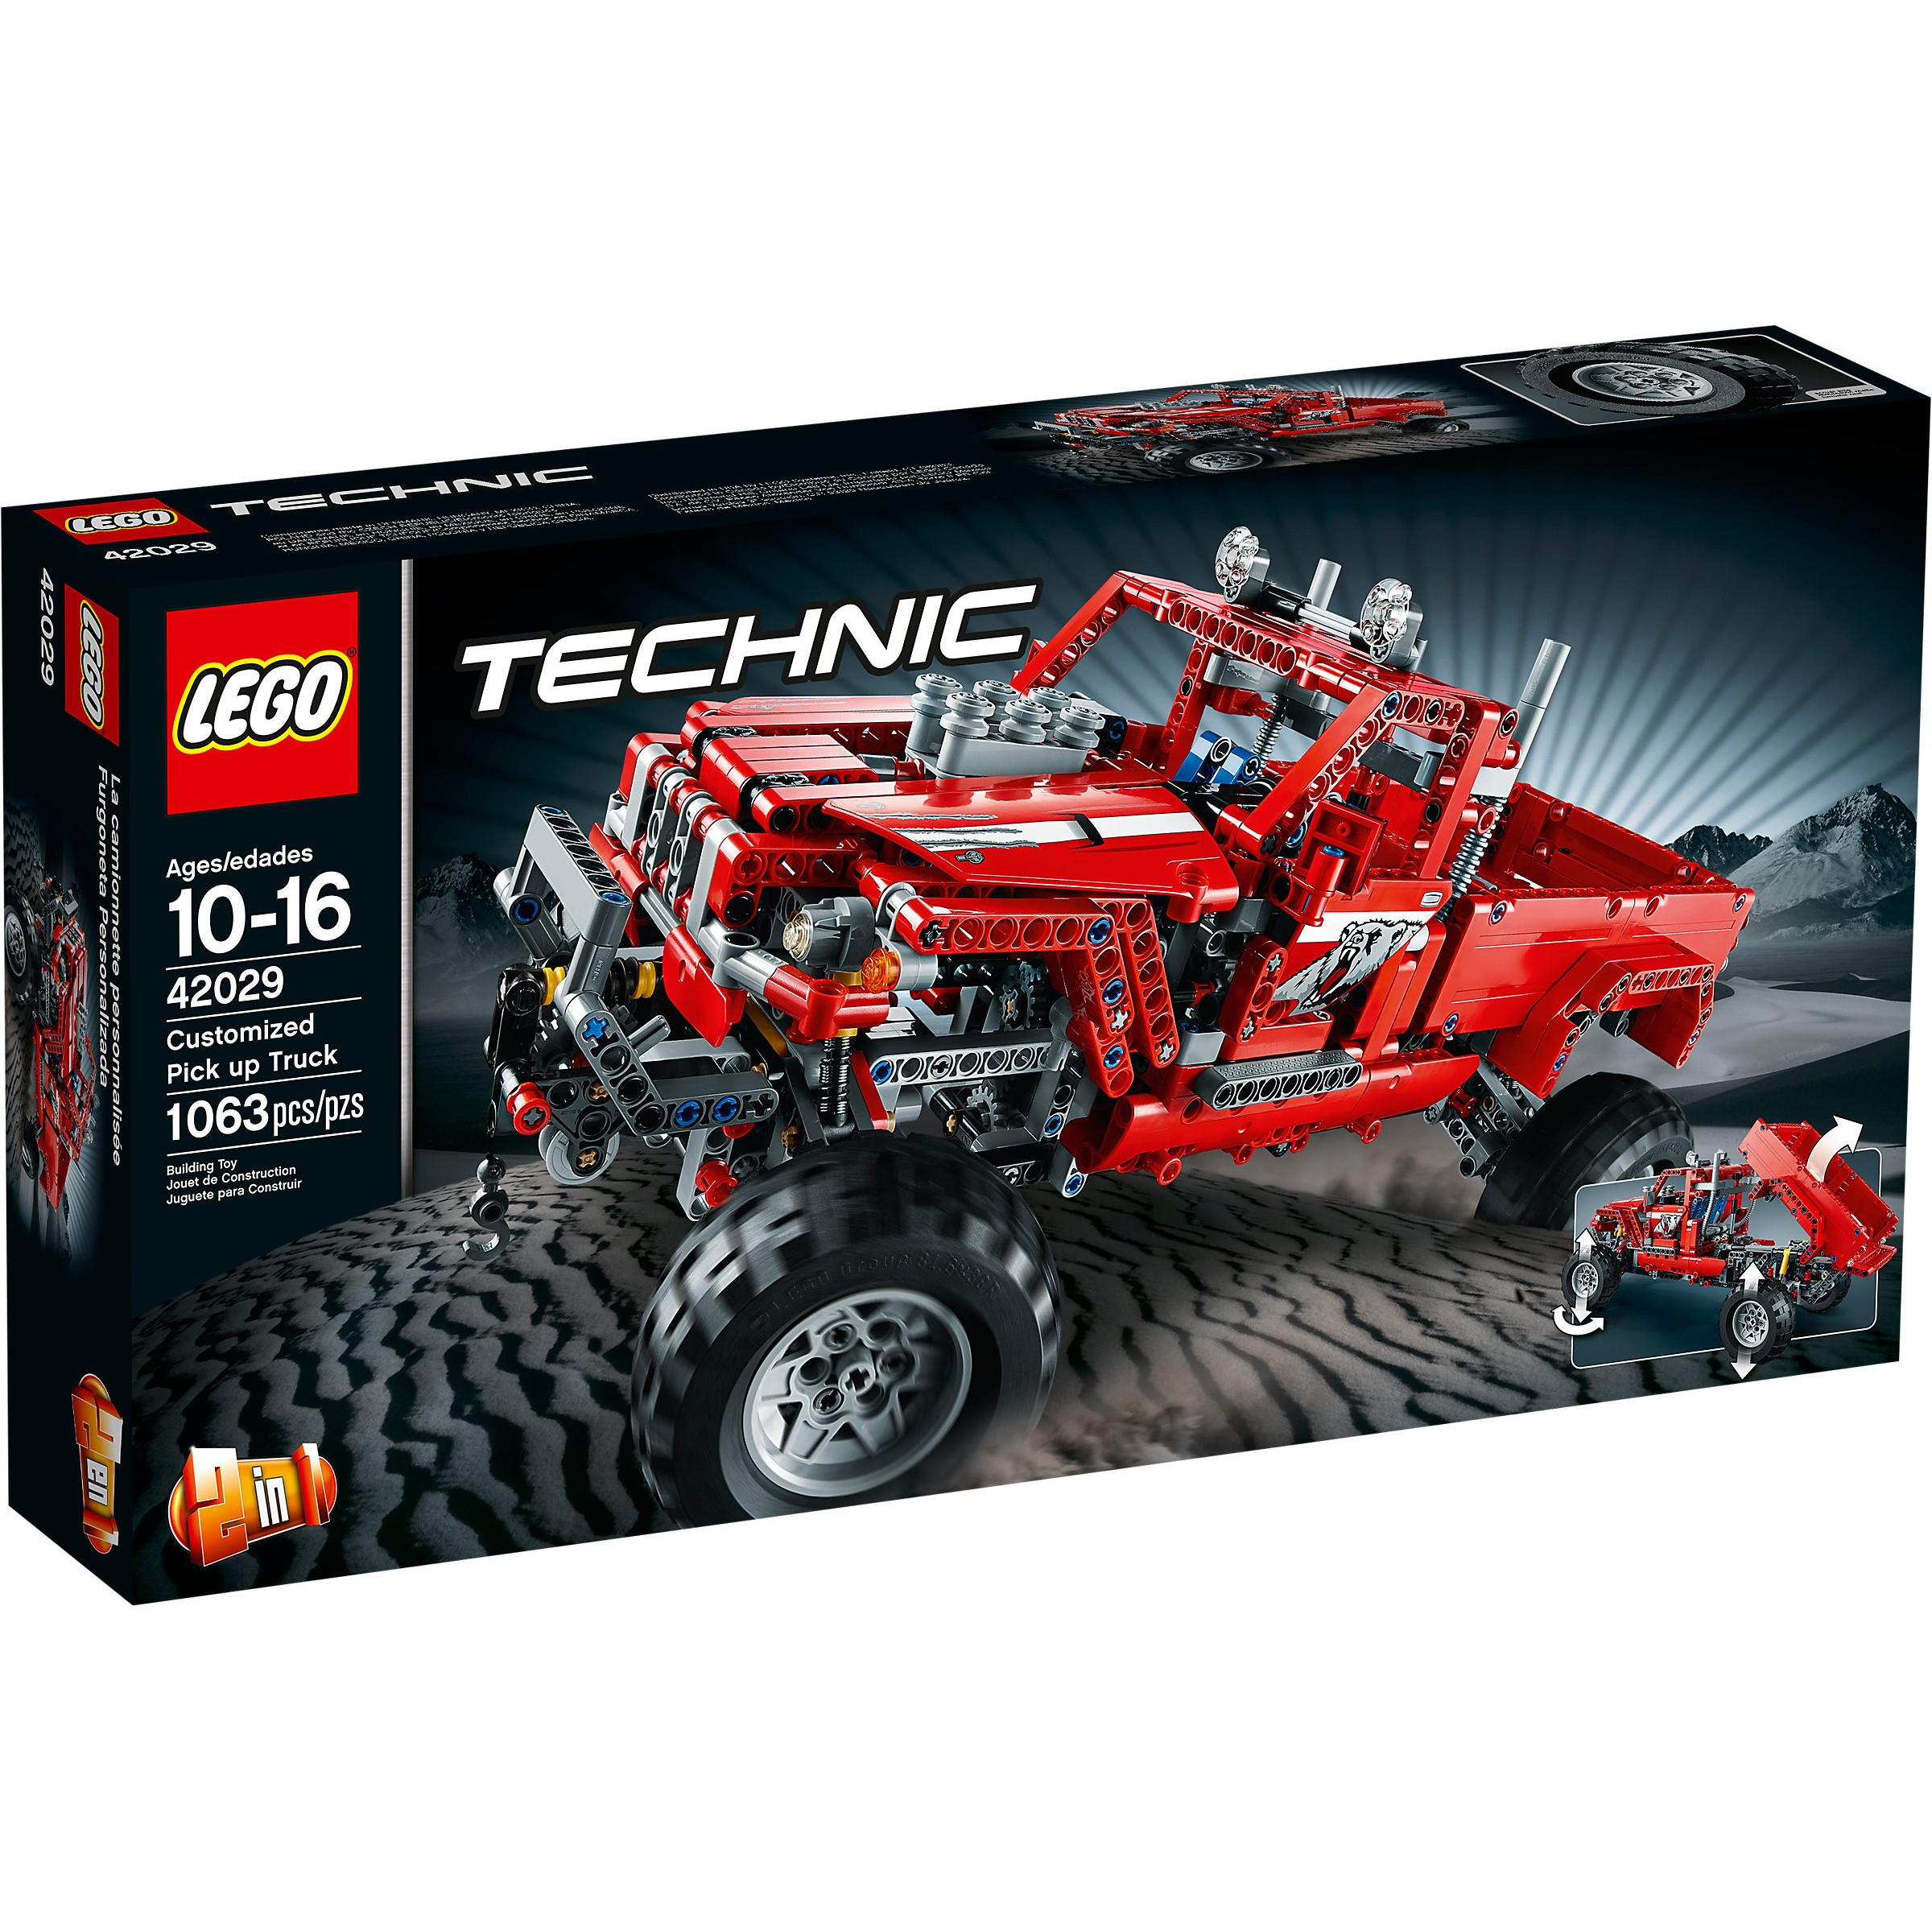 lego 42029 technic customized pick up truck at hobby warehouse. Black Bedroom Furniture Sets. Home Design Ideas